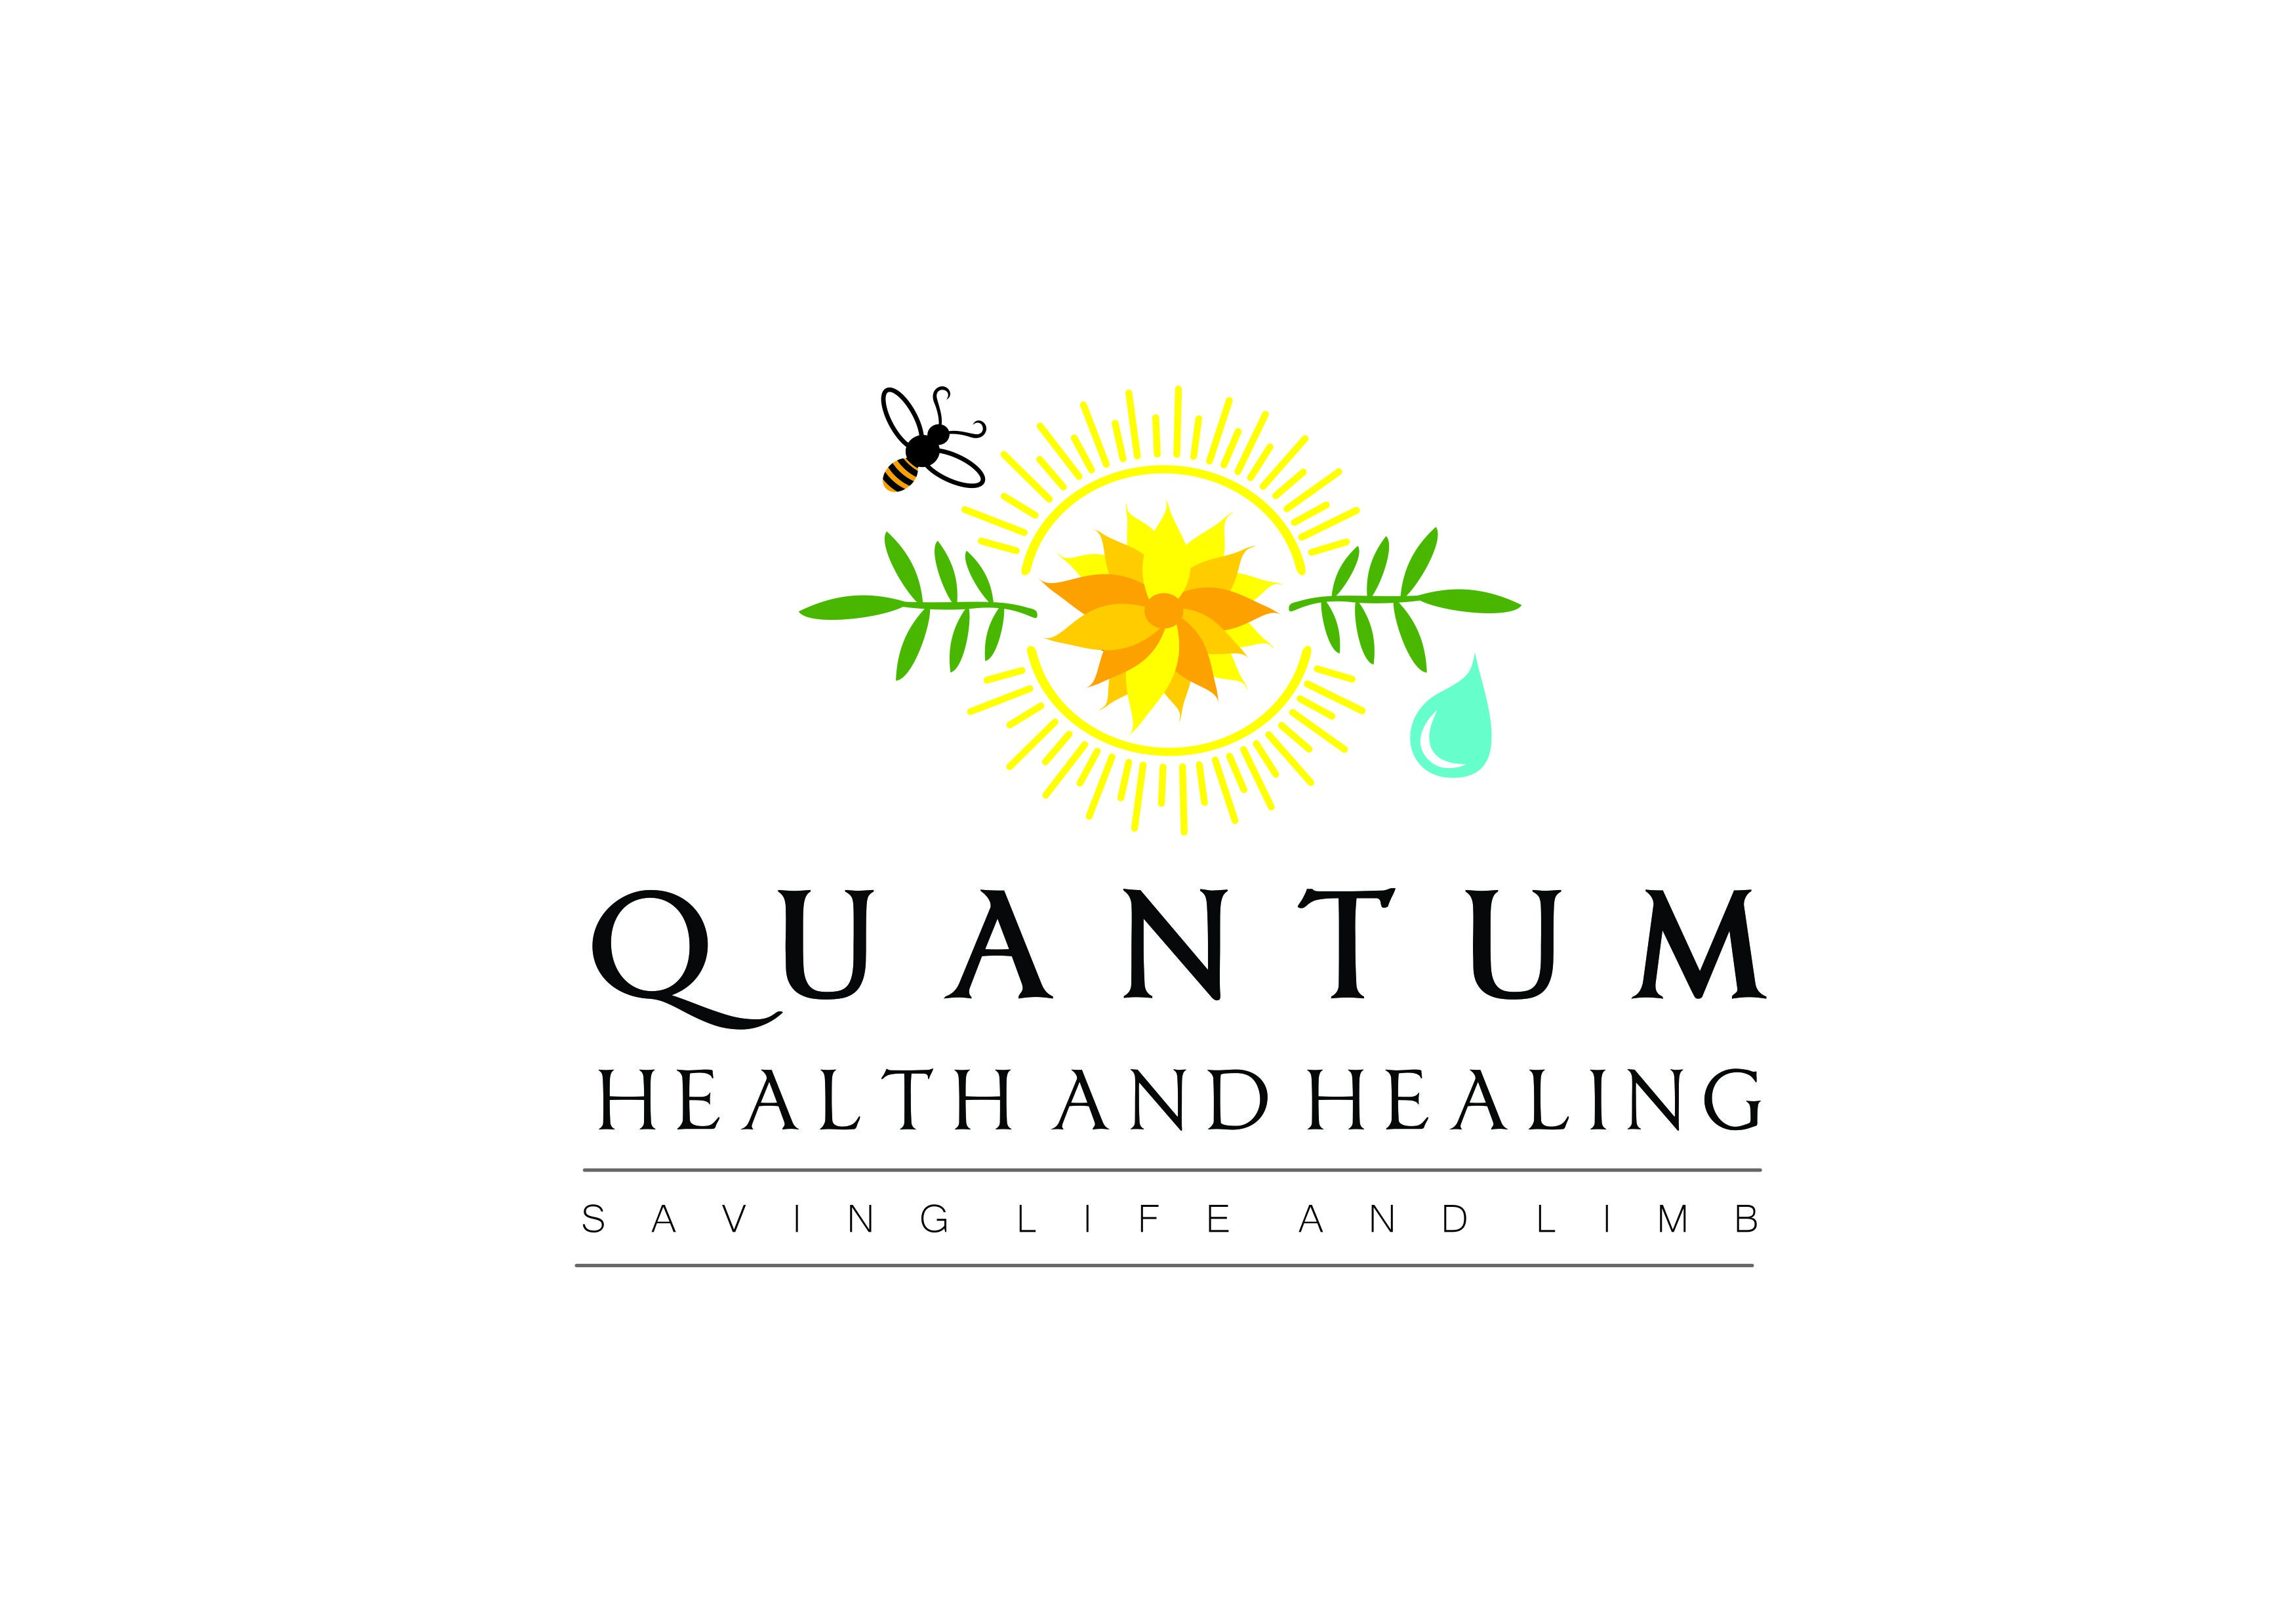 Create a logo for husband and wife doctor team healing serious wounds